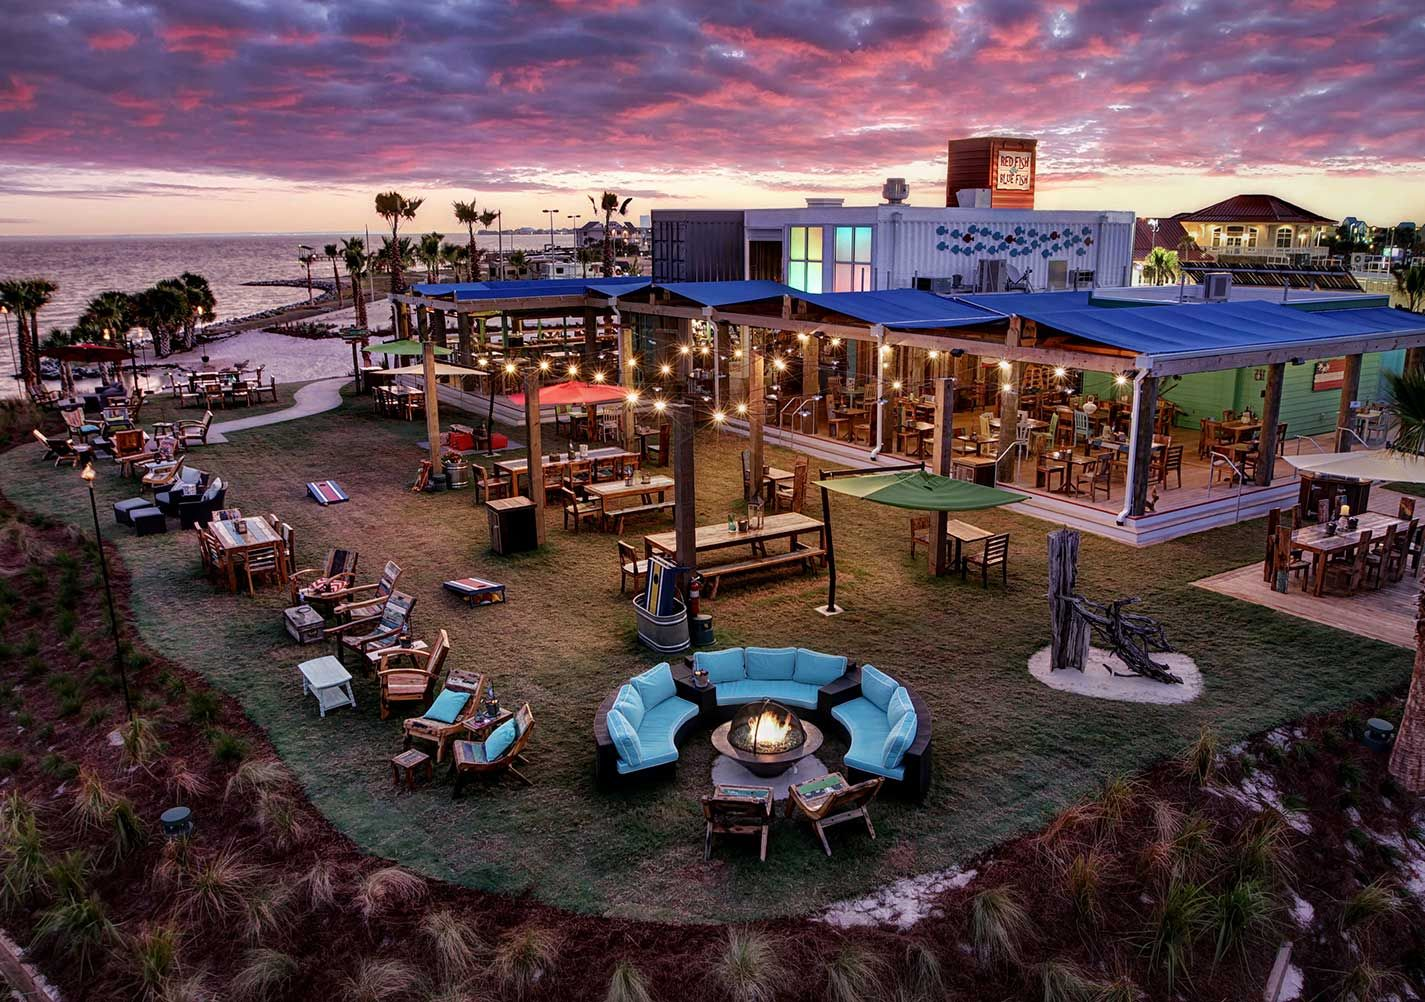 Red Fish Blue Is The Newest Outdoor Waterfront Restaurant On Pensacola Beach Built With Repurposed Shipping Containers From Indonesian Boat Wood That